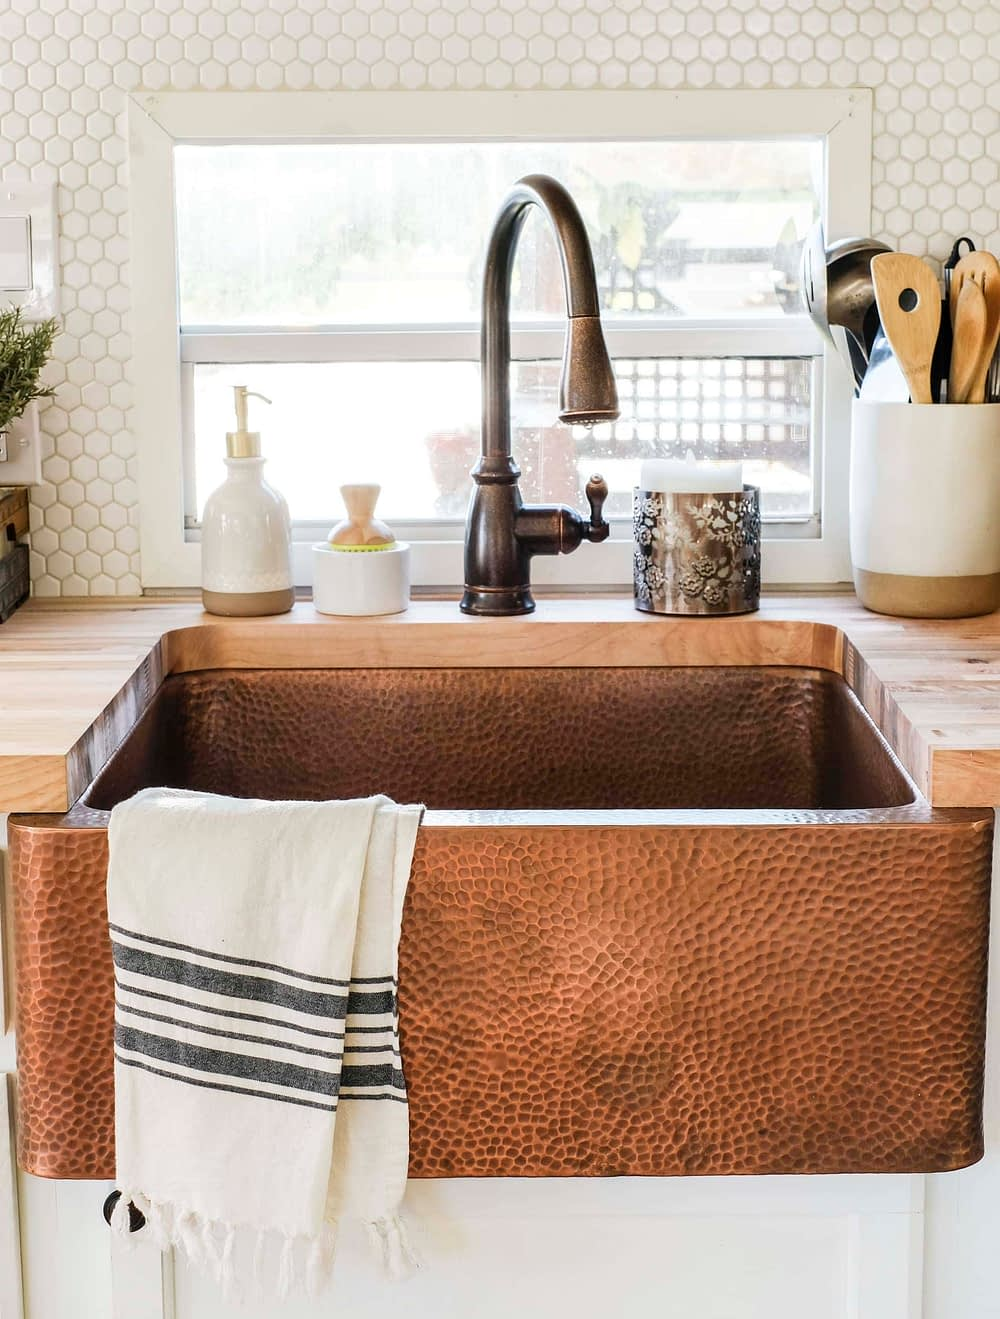 RV kitchen remodel featuring am apron front copper sink